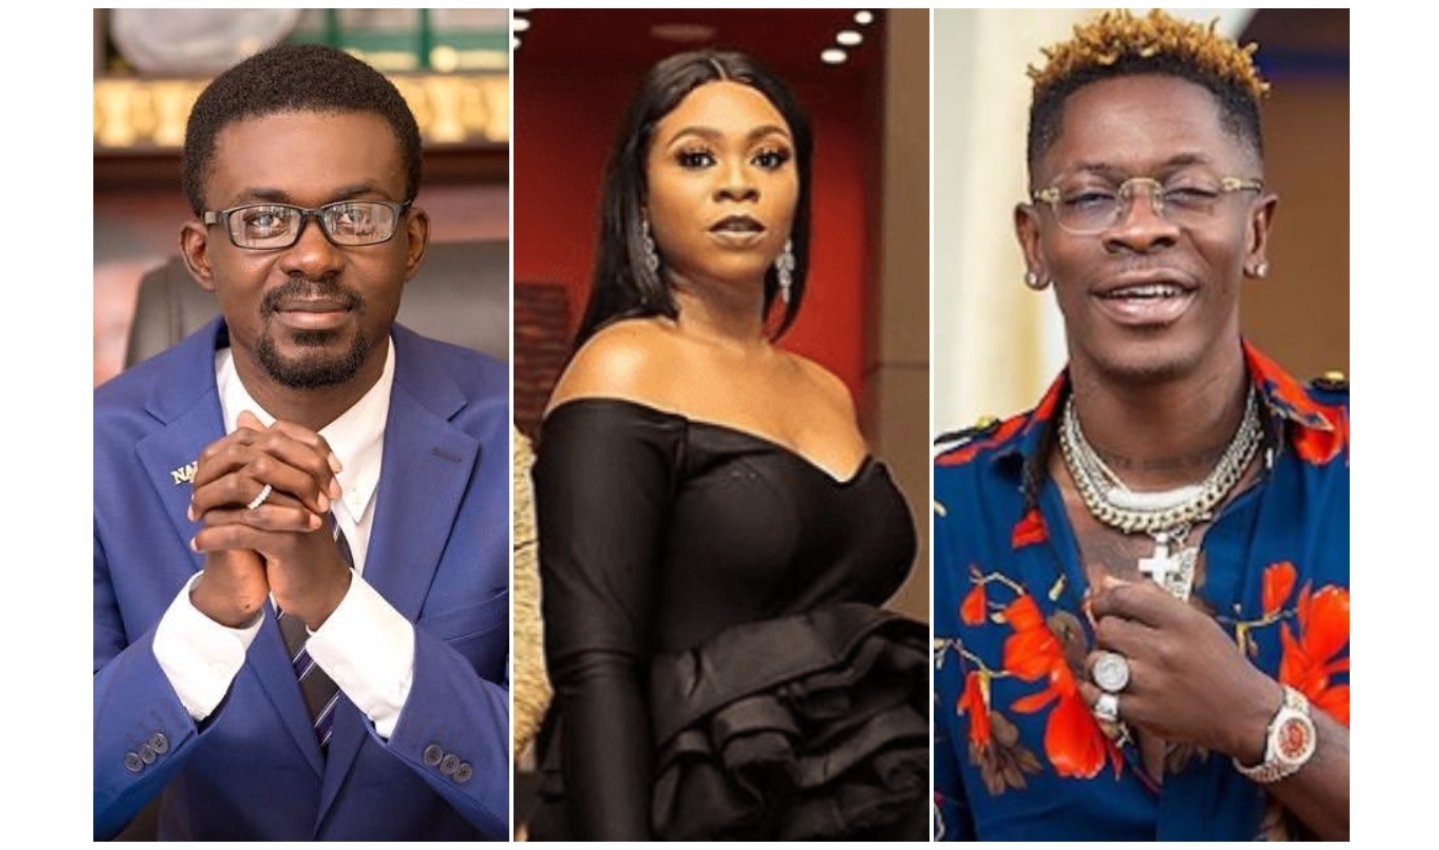 Nam1 slept with Shatta Michy